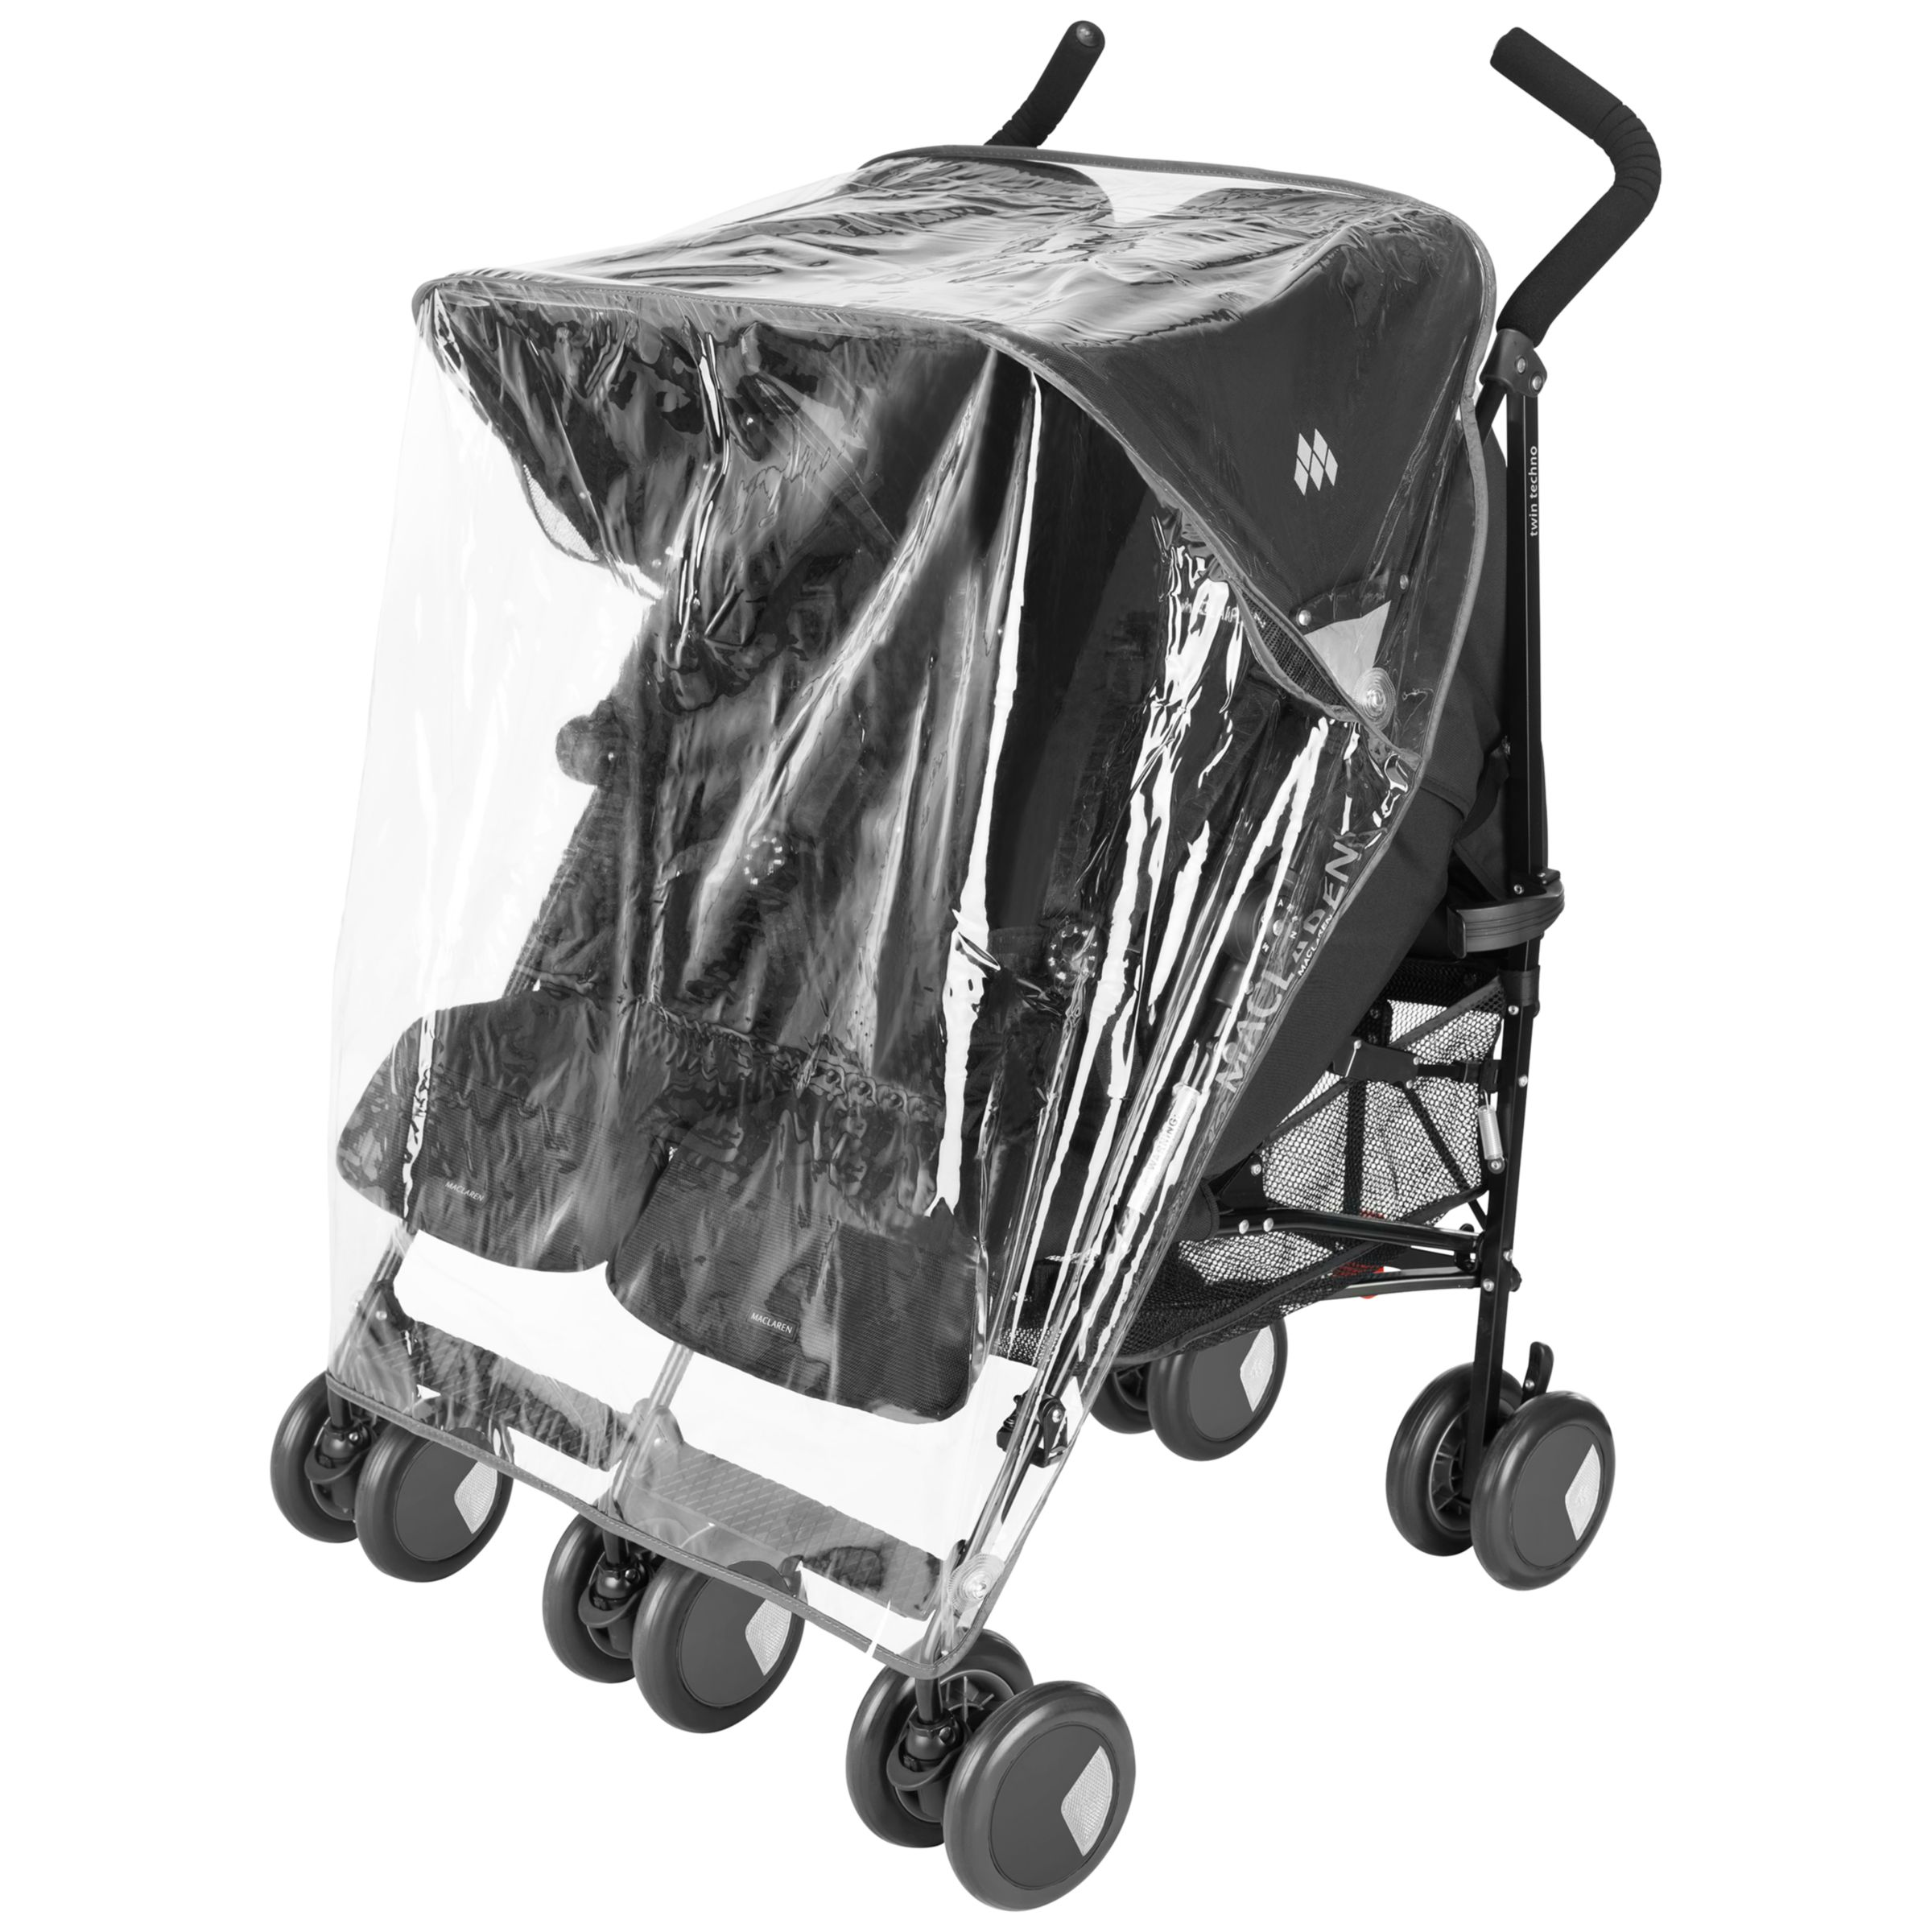 Maclaren Stroller Uk Reviews Maclaren Twin Triumph And Maclaren Twin Techno Raincover